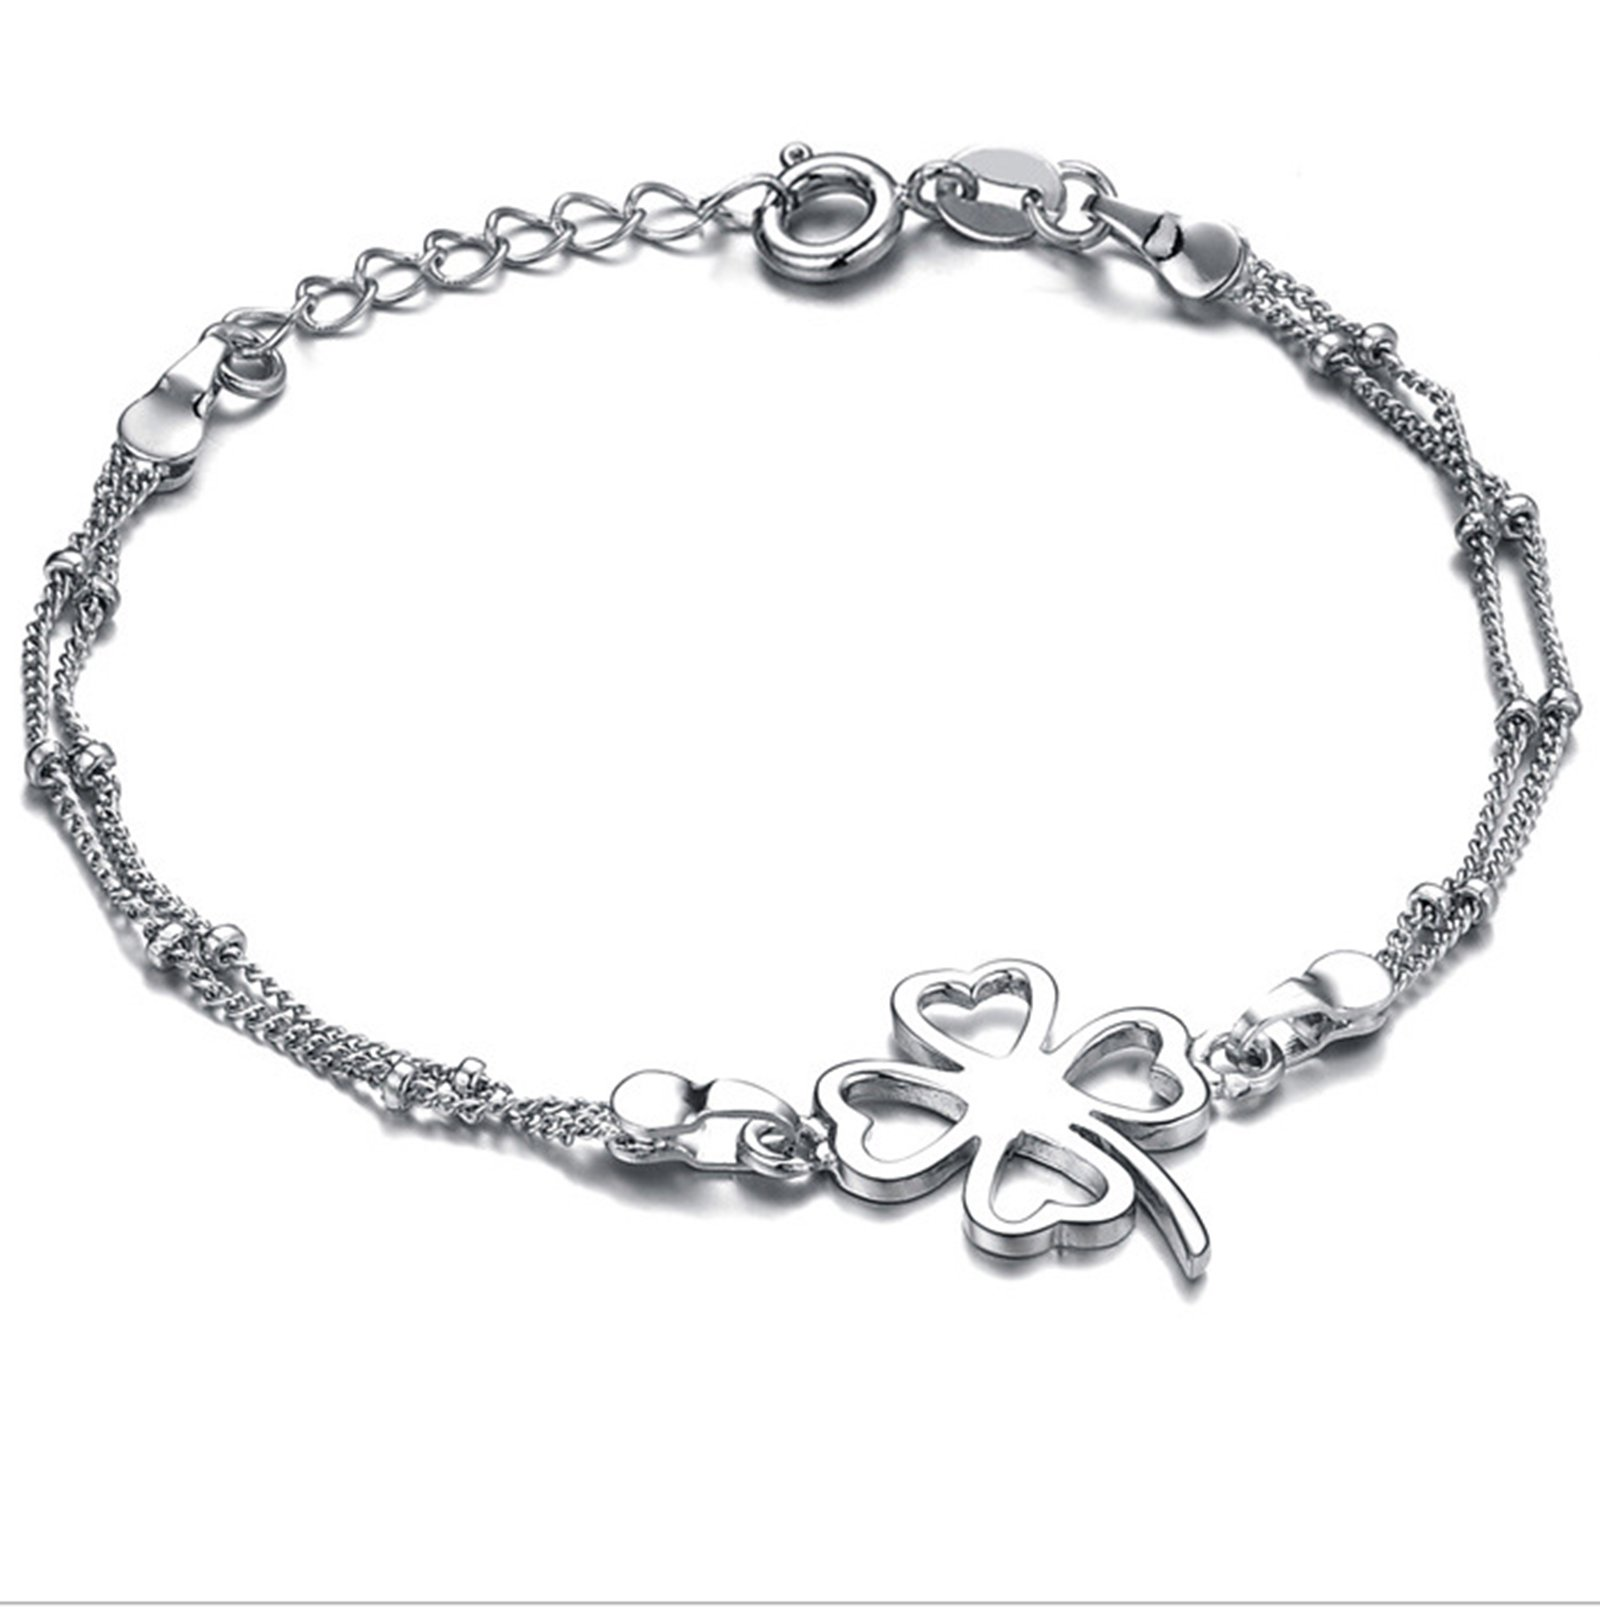 Bishilin Beach Foot Jewelry Wedding Double Chain Clover anklet diamond 25 CM